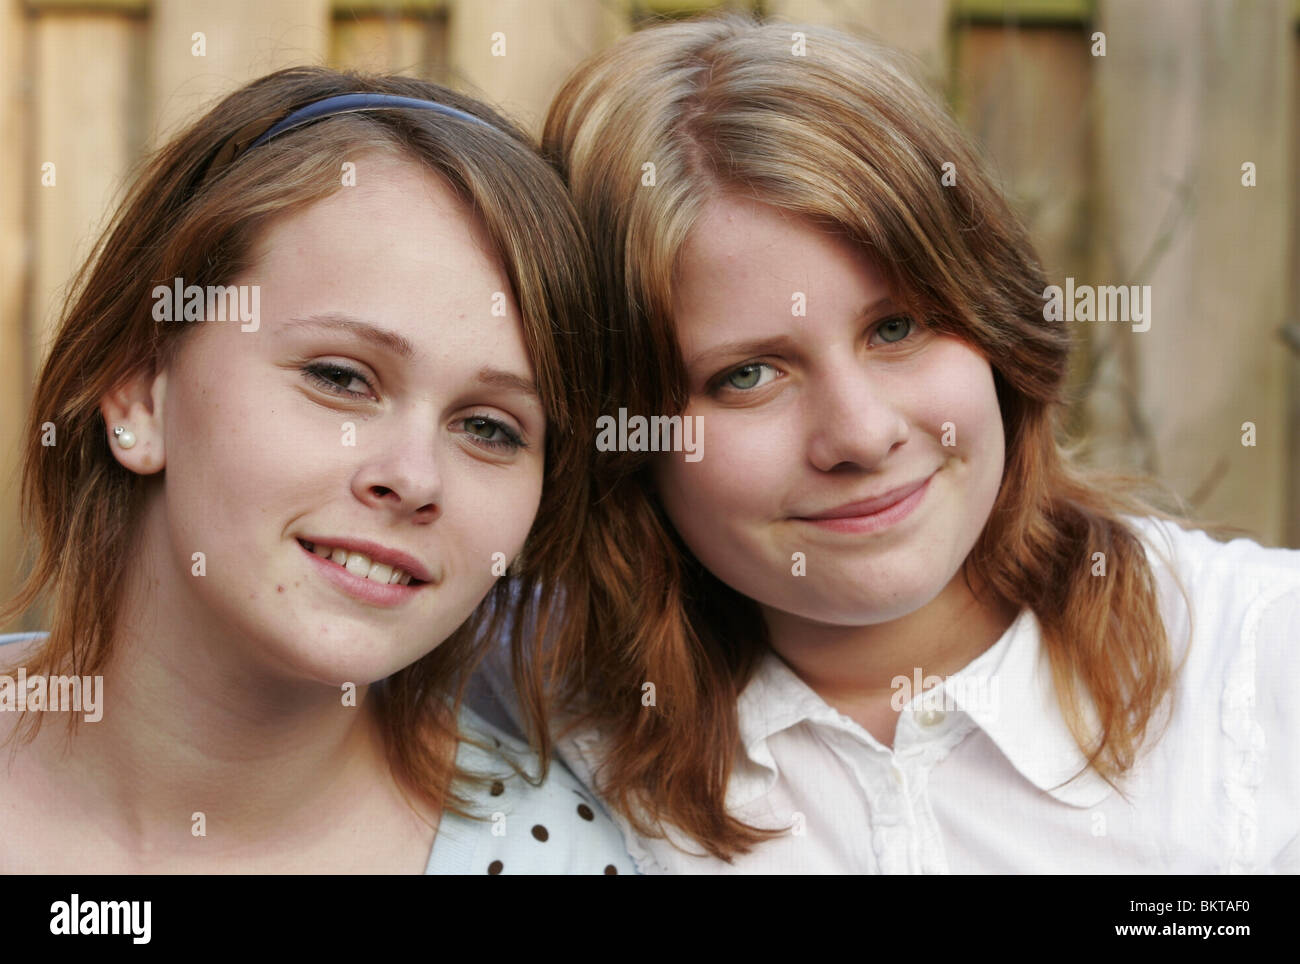 Portrait step sisters - Stock Image